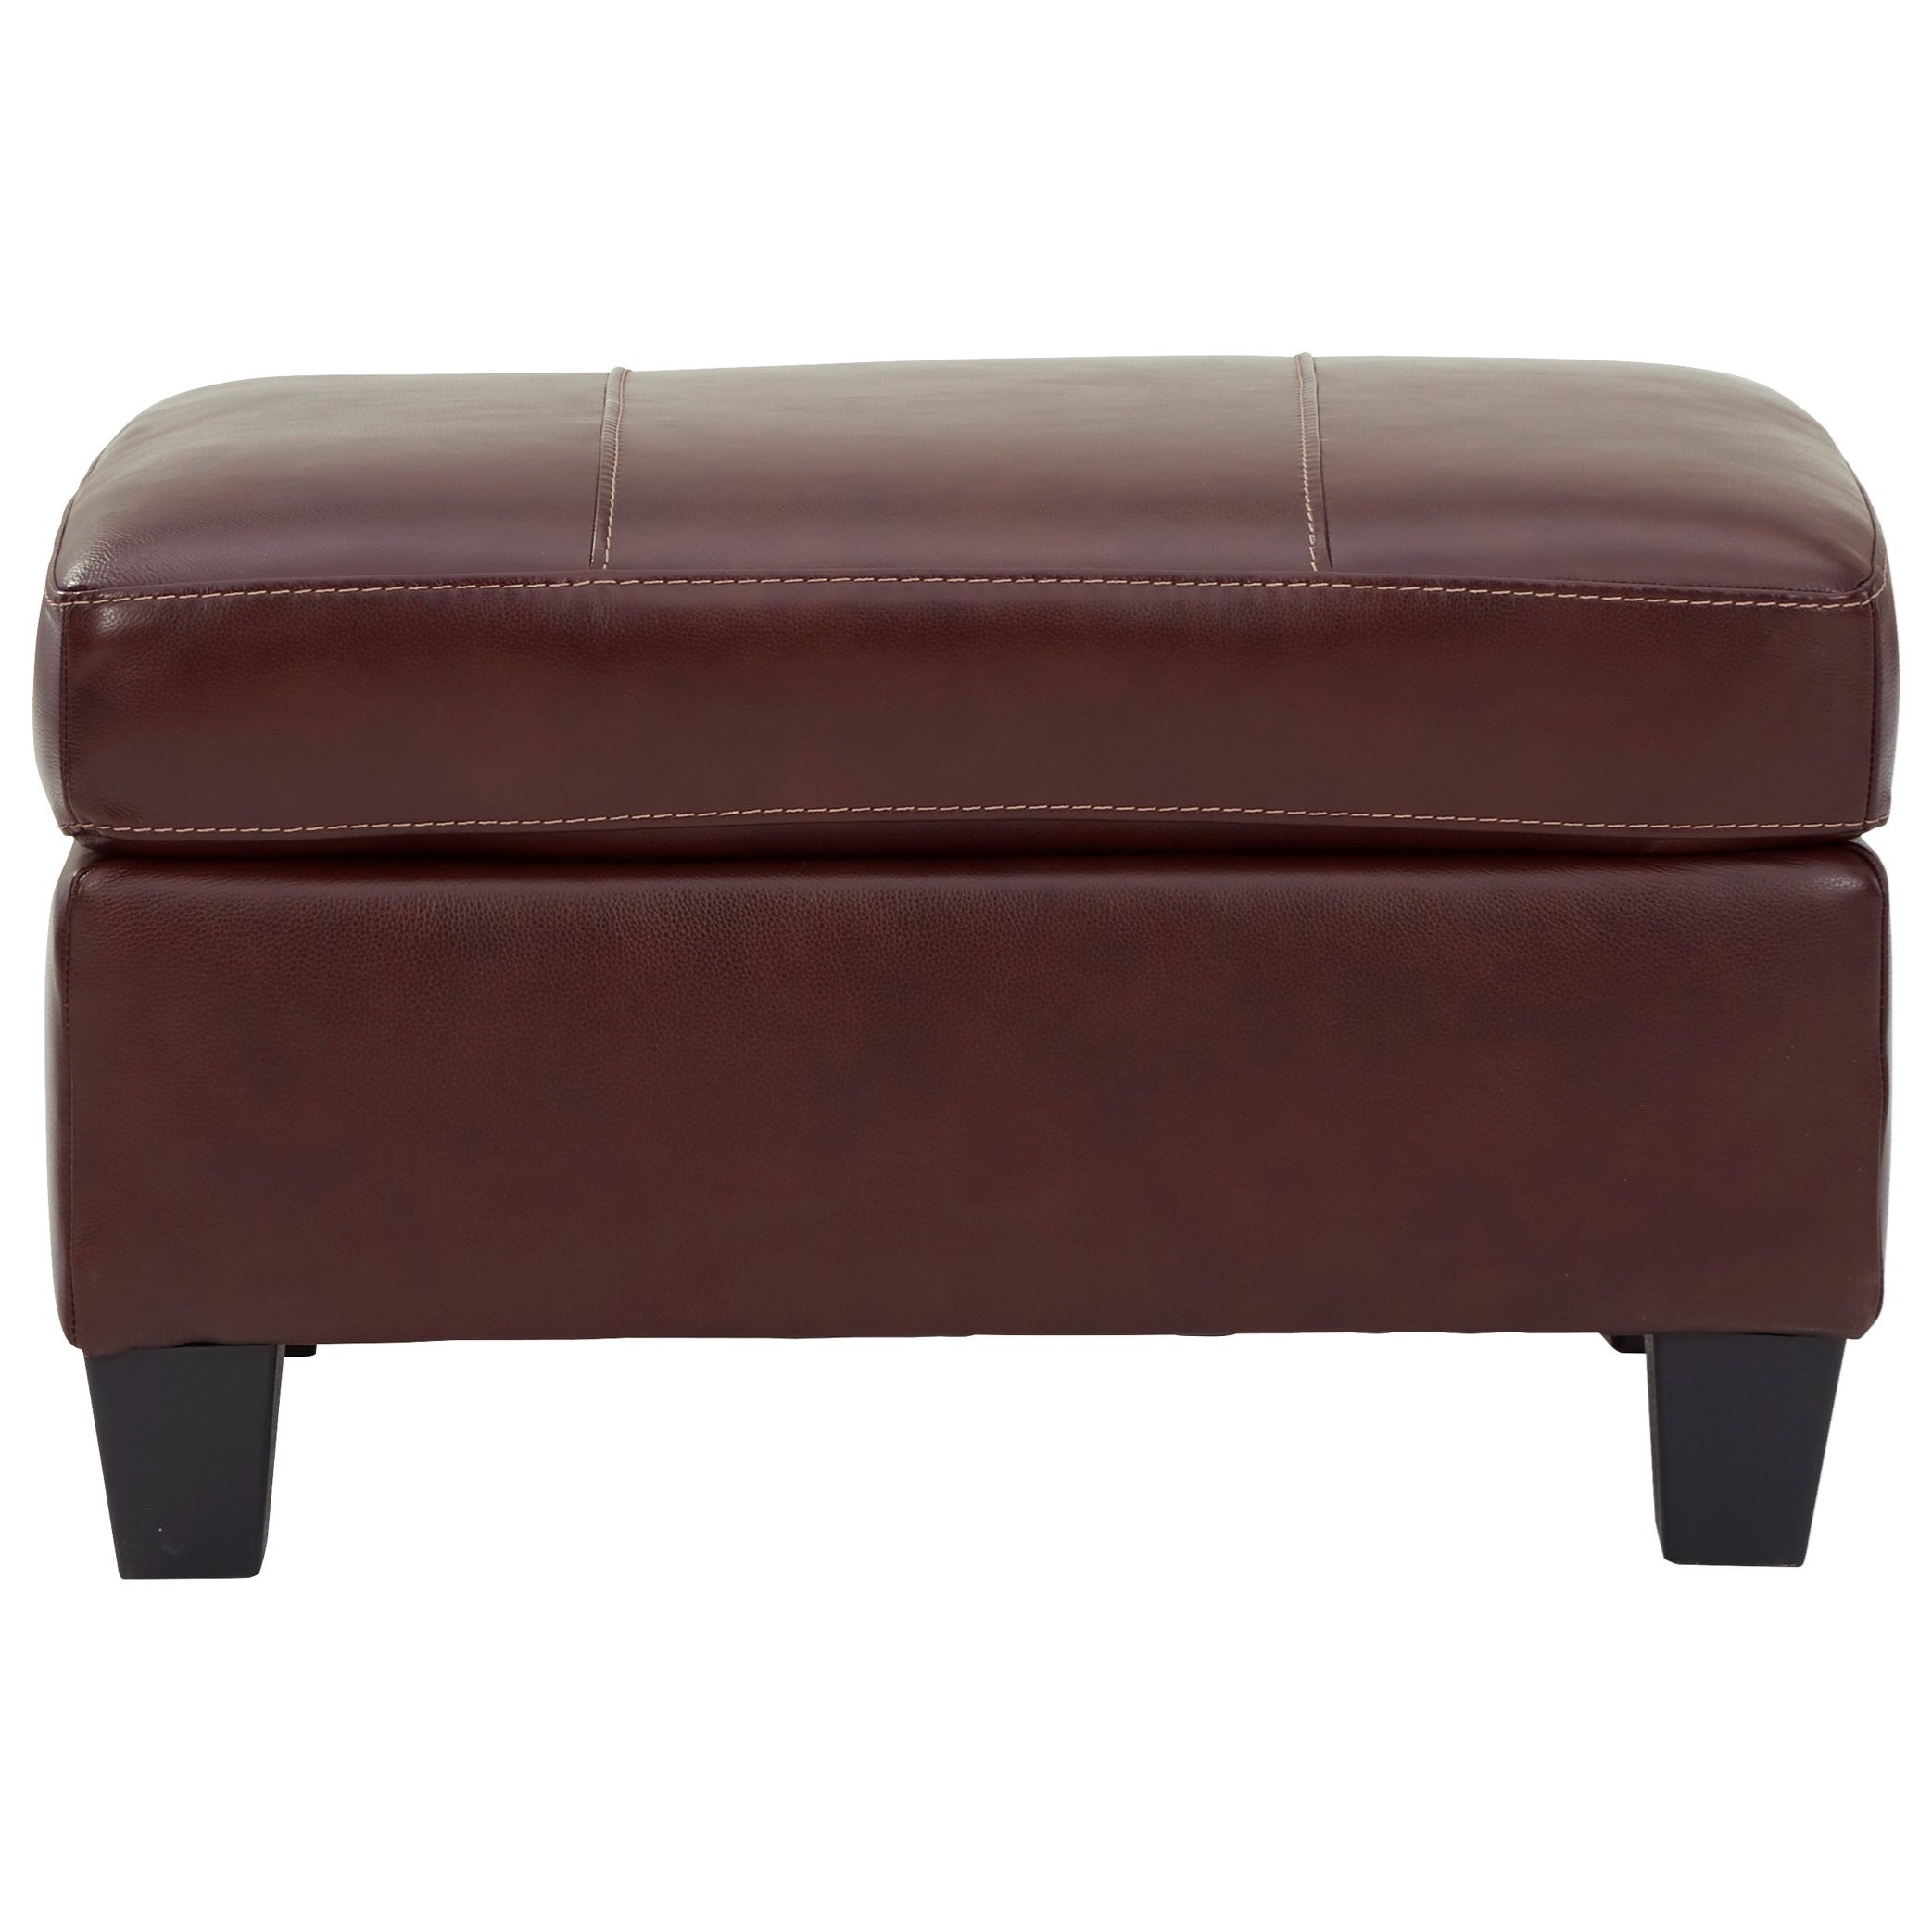 Fortney Ottoman by Signature Design by Ashley at Beck's Furniture